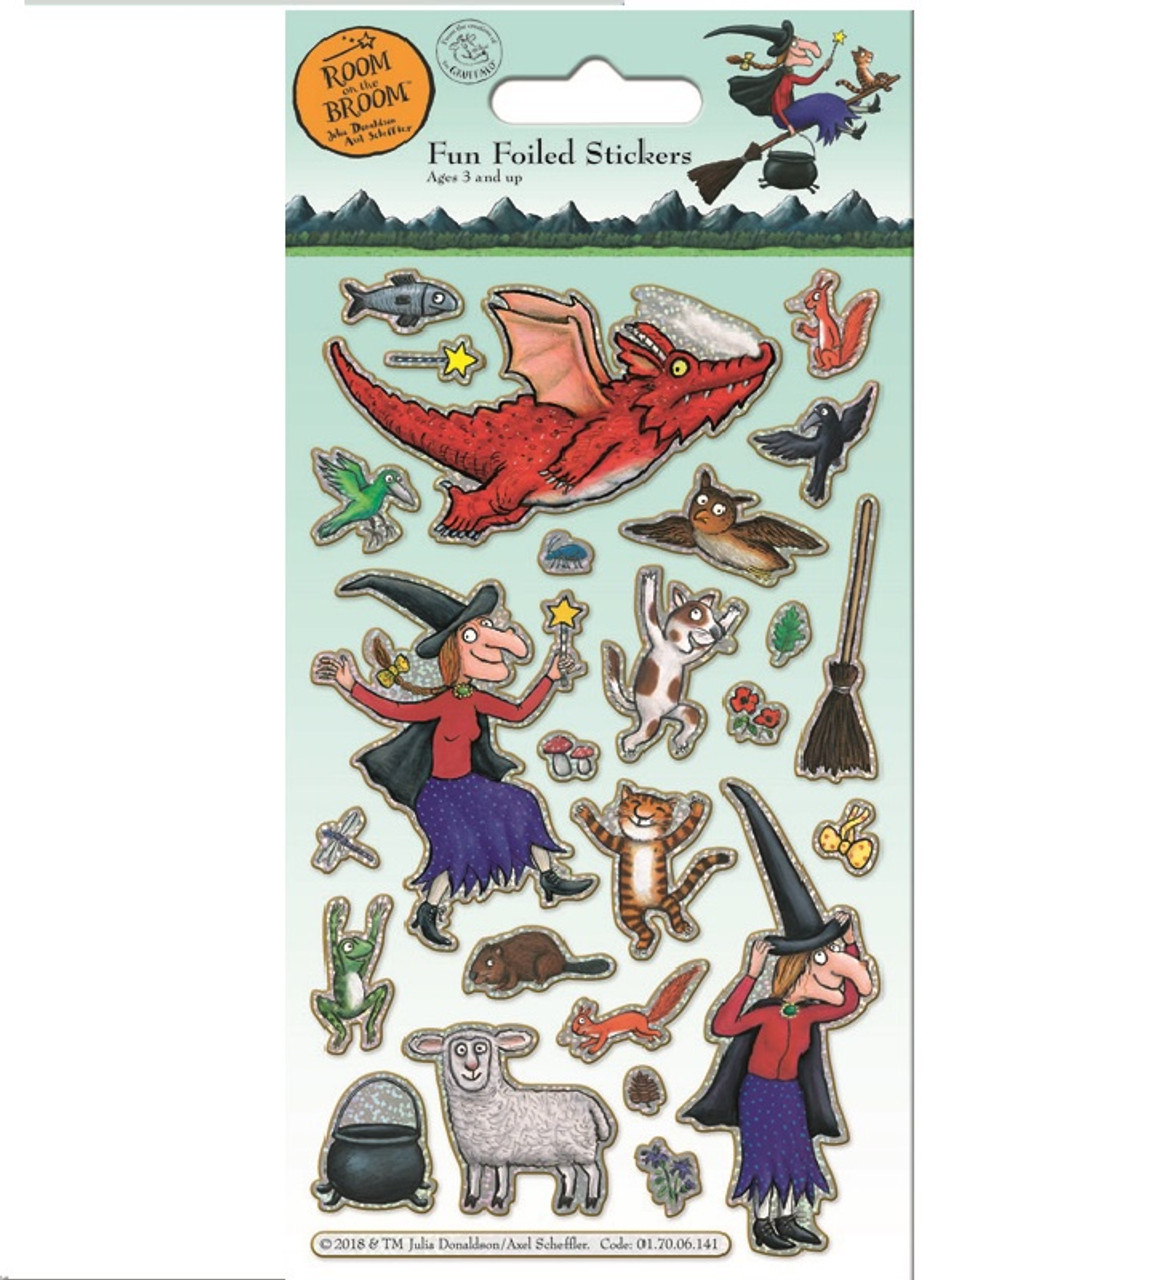 ROOM ON THE BROOM FOILED STICKERS